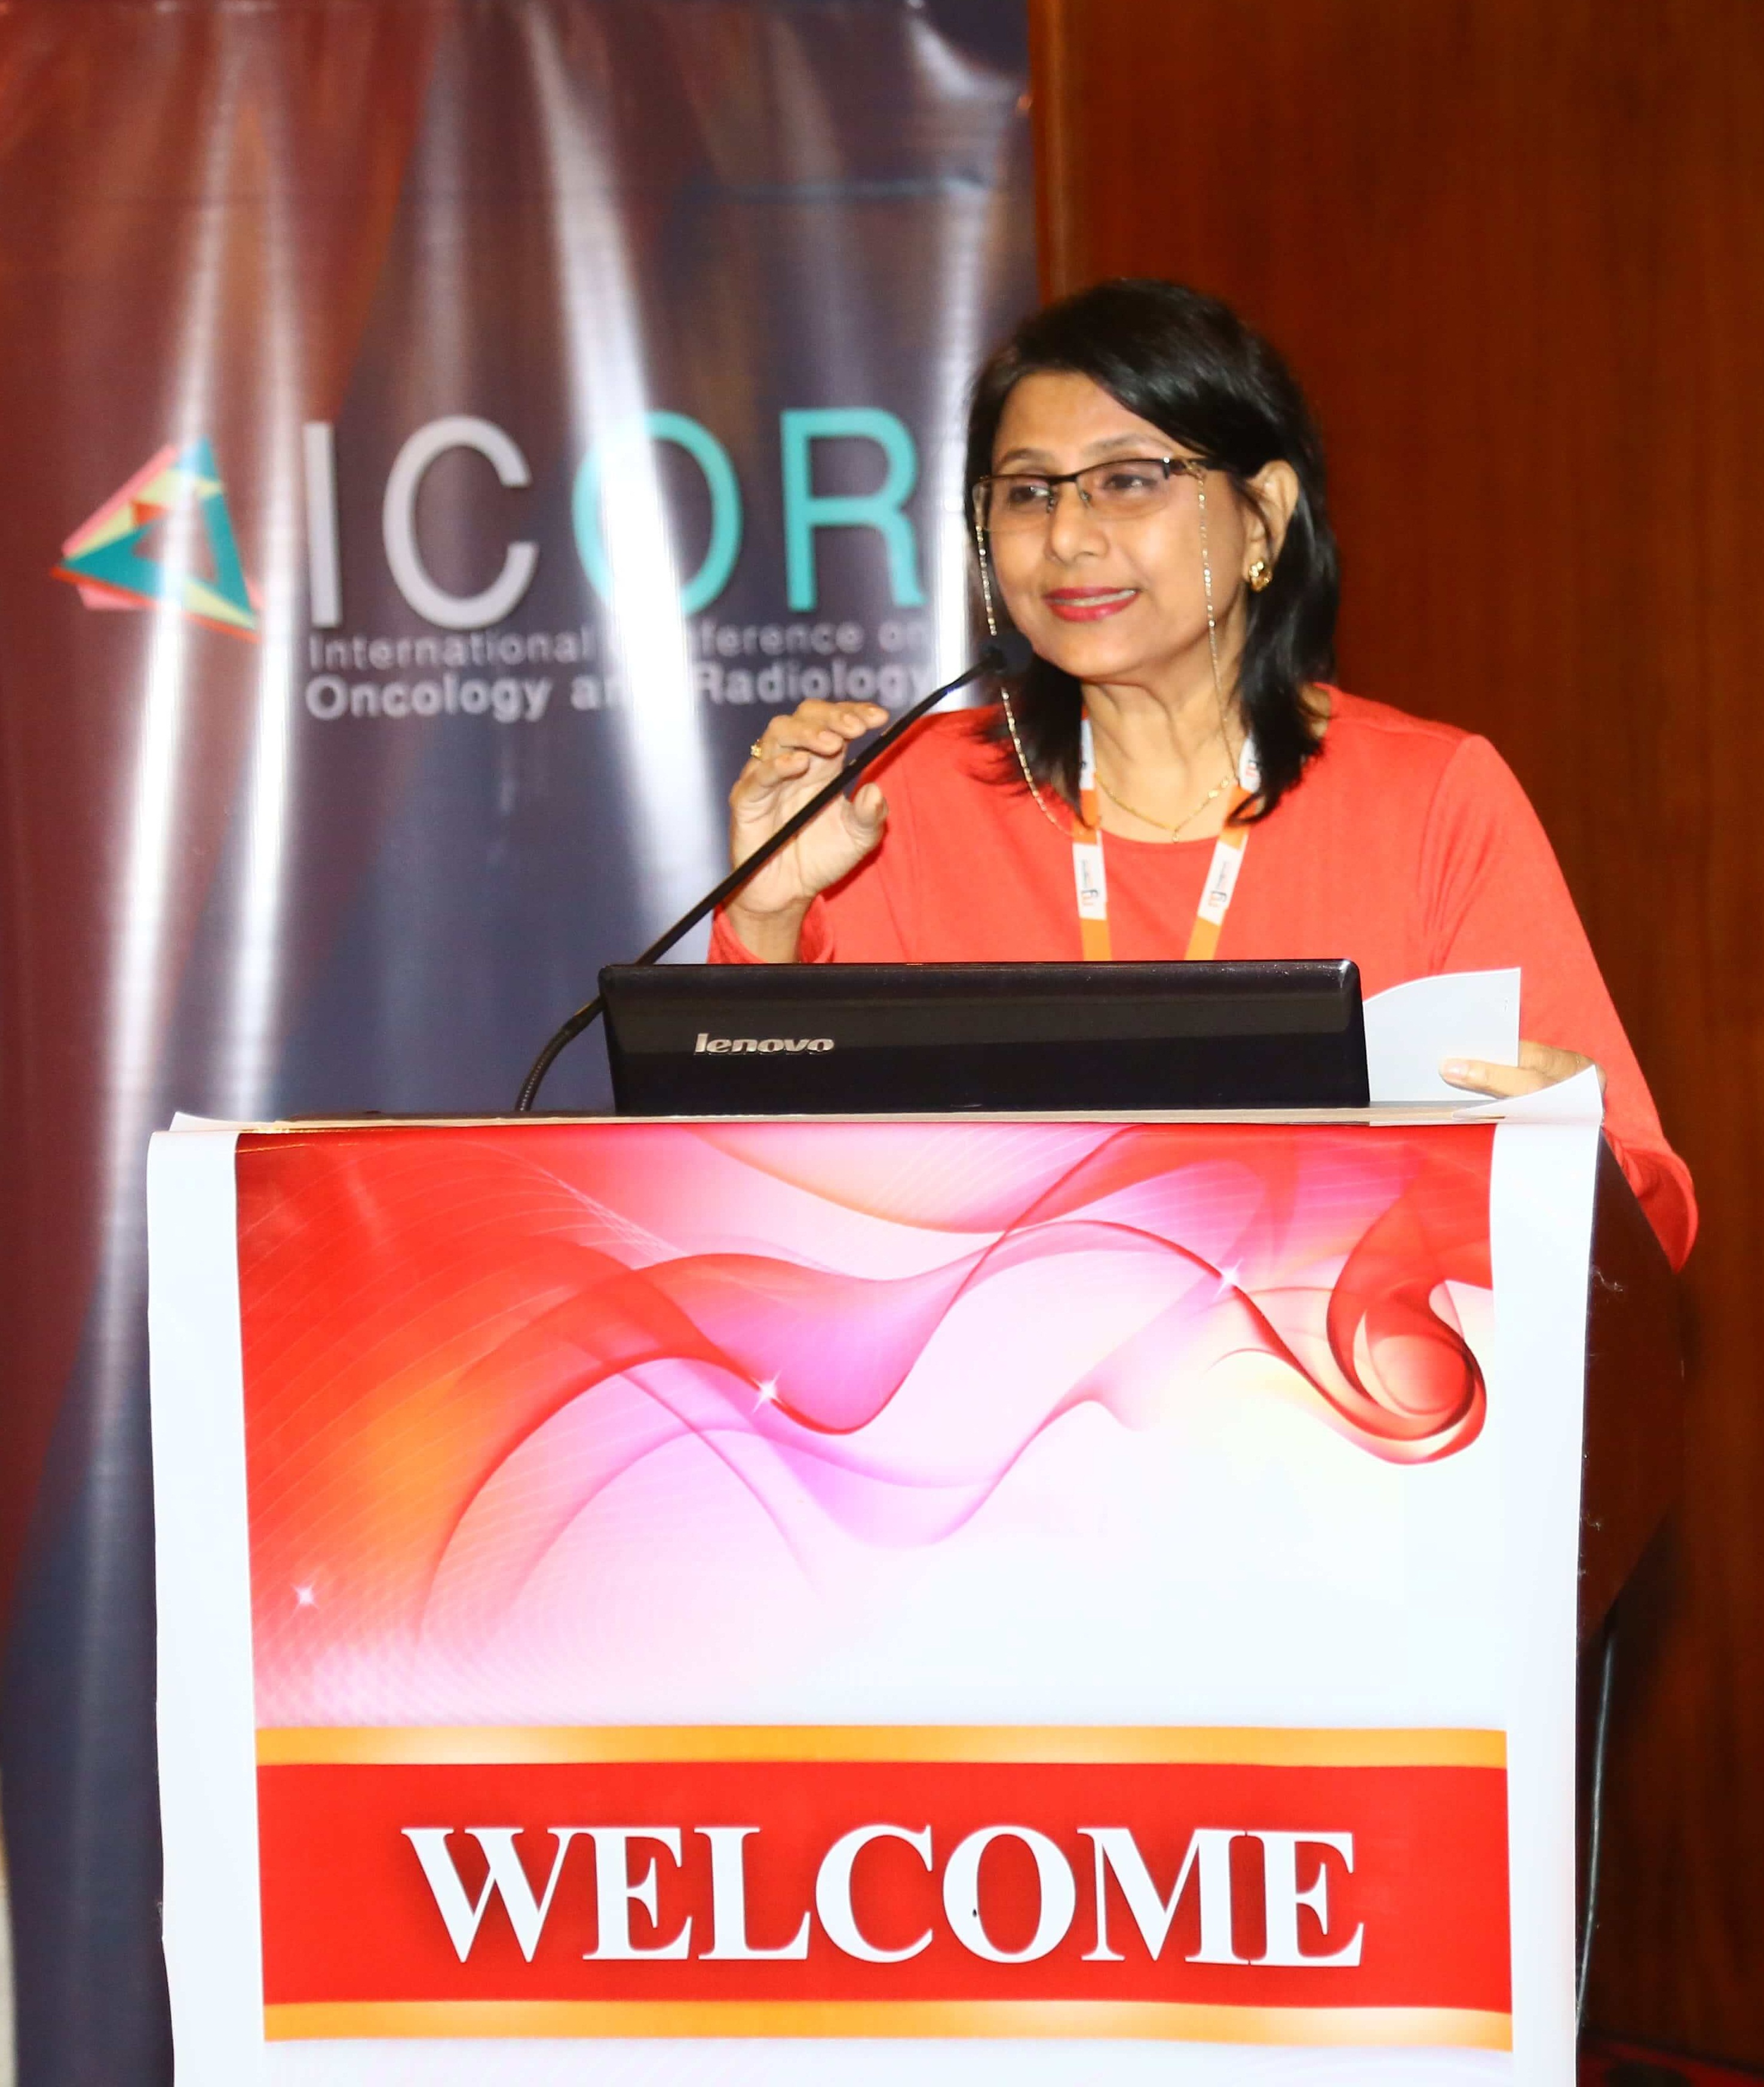 Cancer education conferences - Dr. Debjani Dasgupta